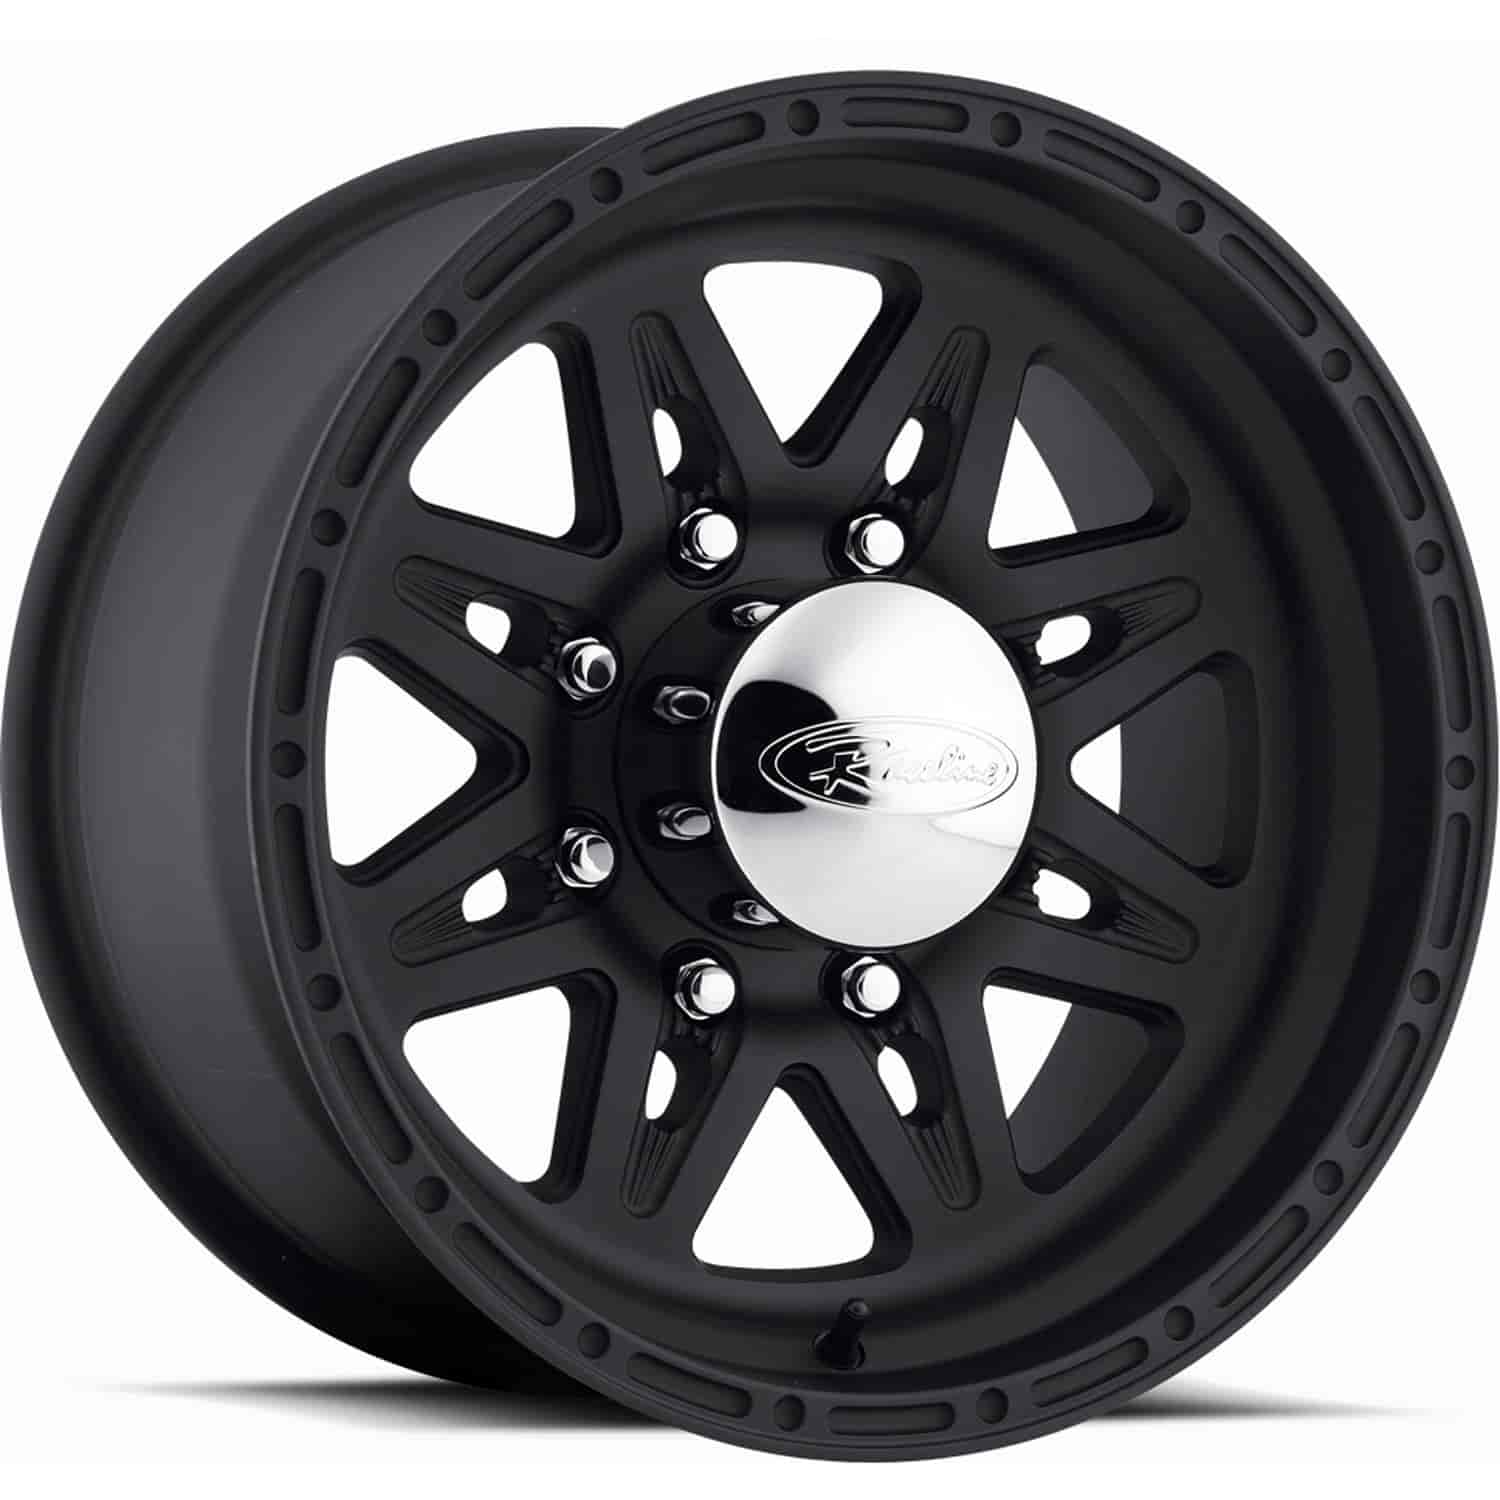 Raceline Wheels 892-79081